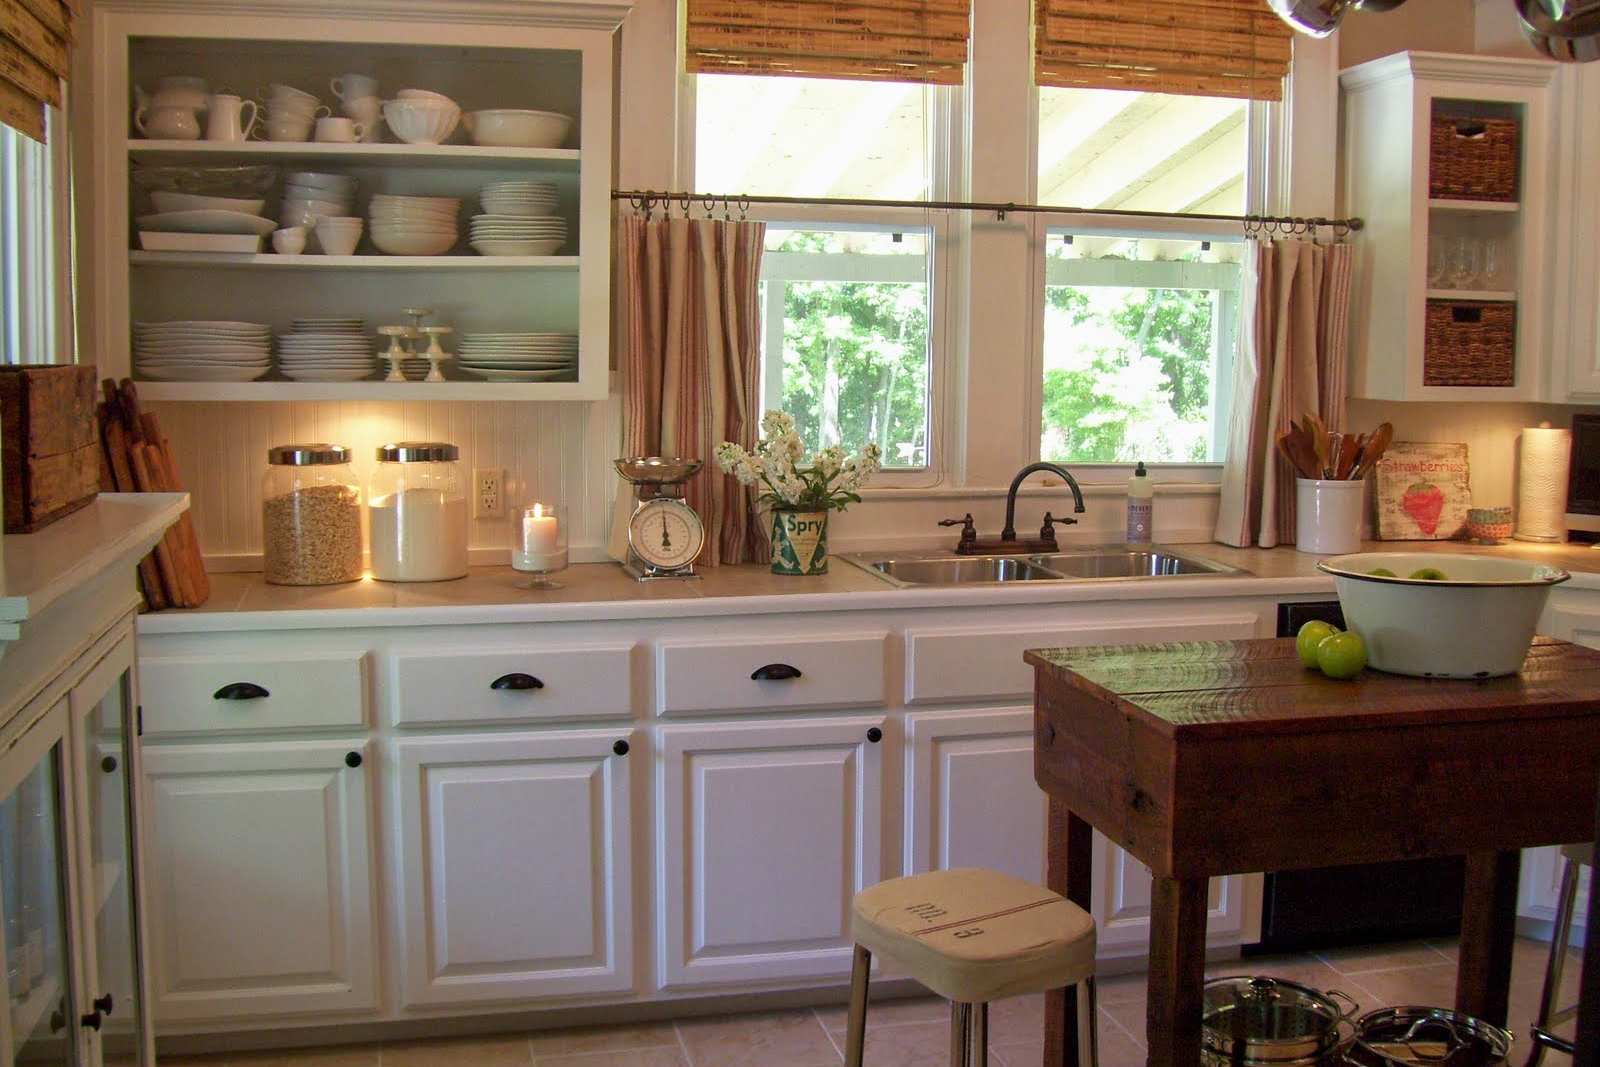 awesome How To Remodel Kitchen On A Budget #7: HouseLogic